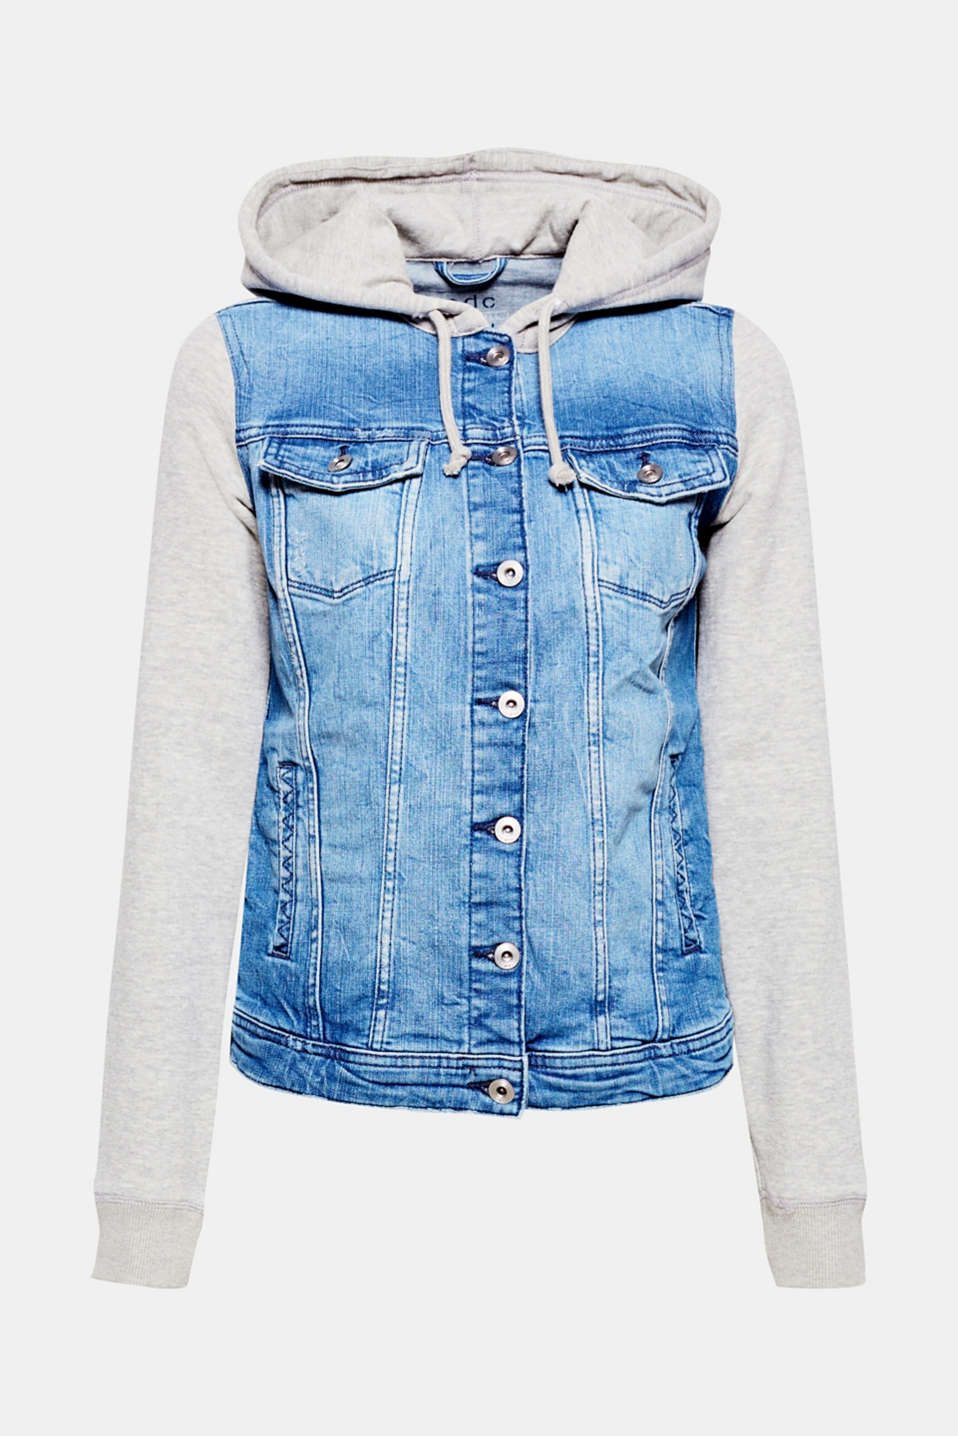 A casual, comfortable favourite piece in a trendy, layered design: Denim jacket with sleeves and hood in soft sweatshirt fabric.